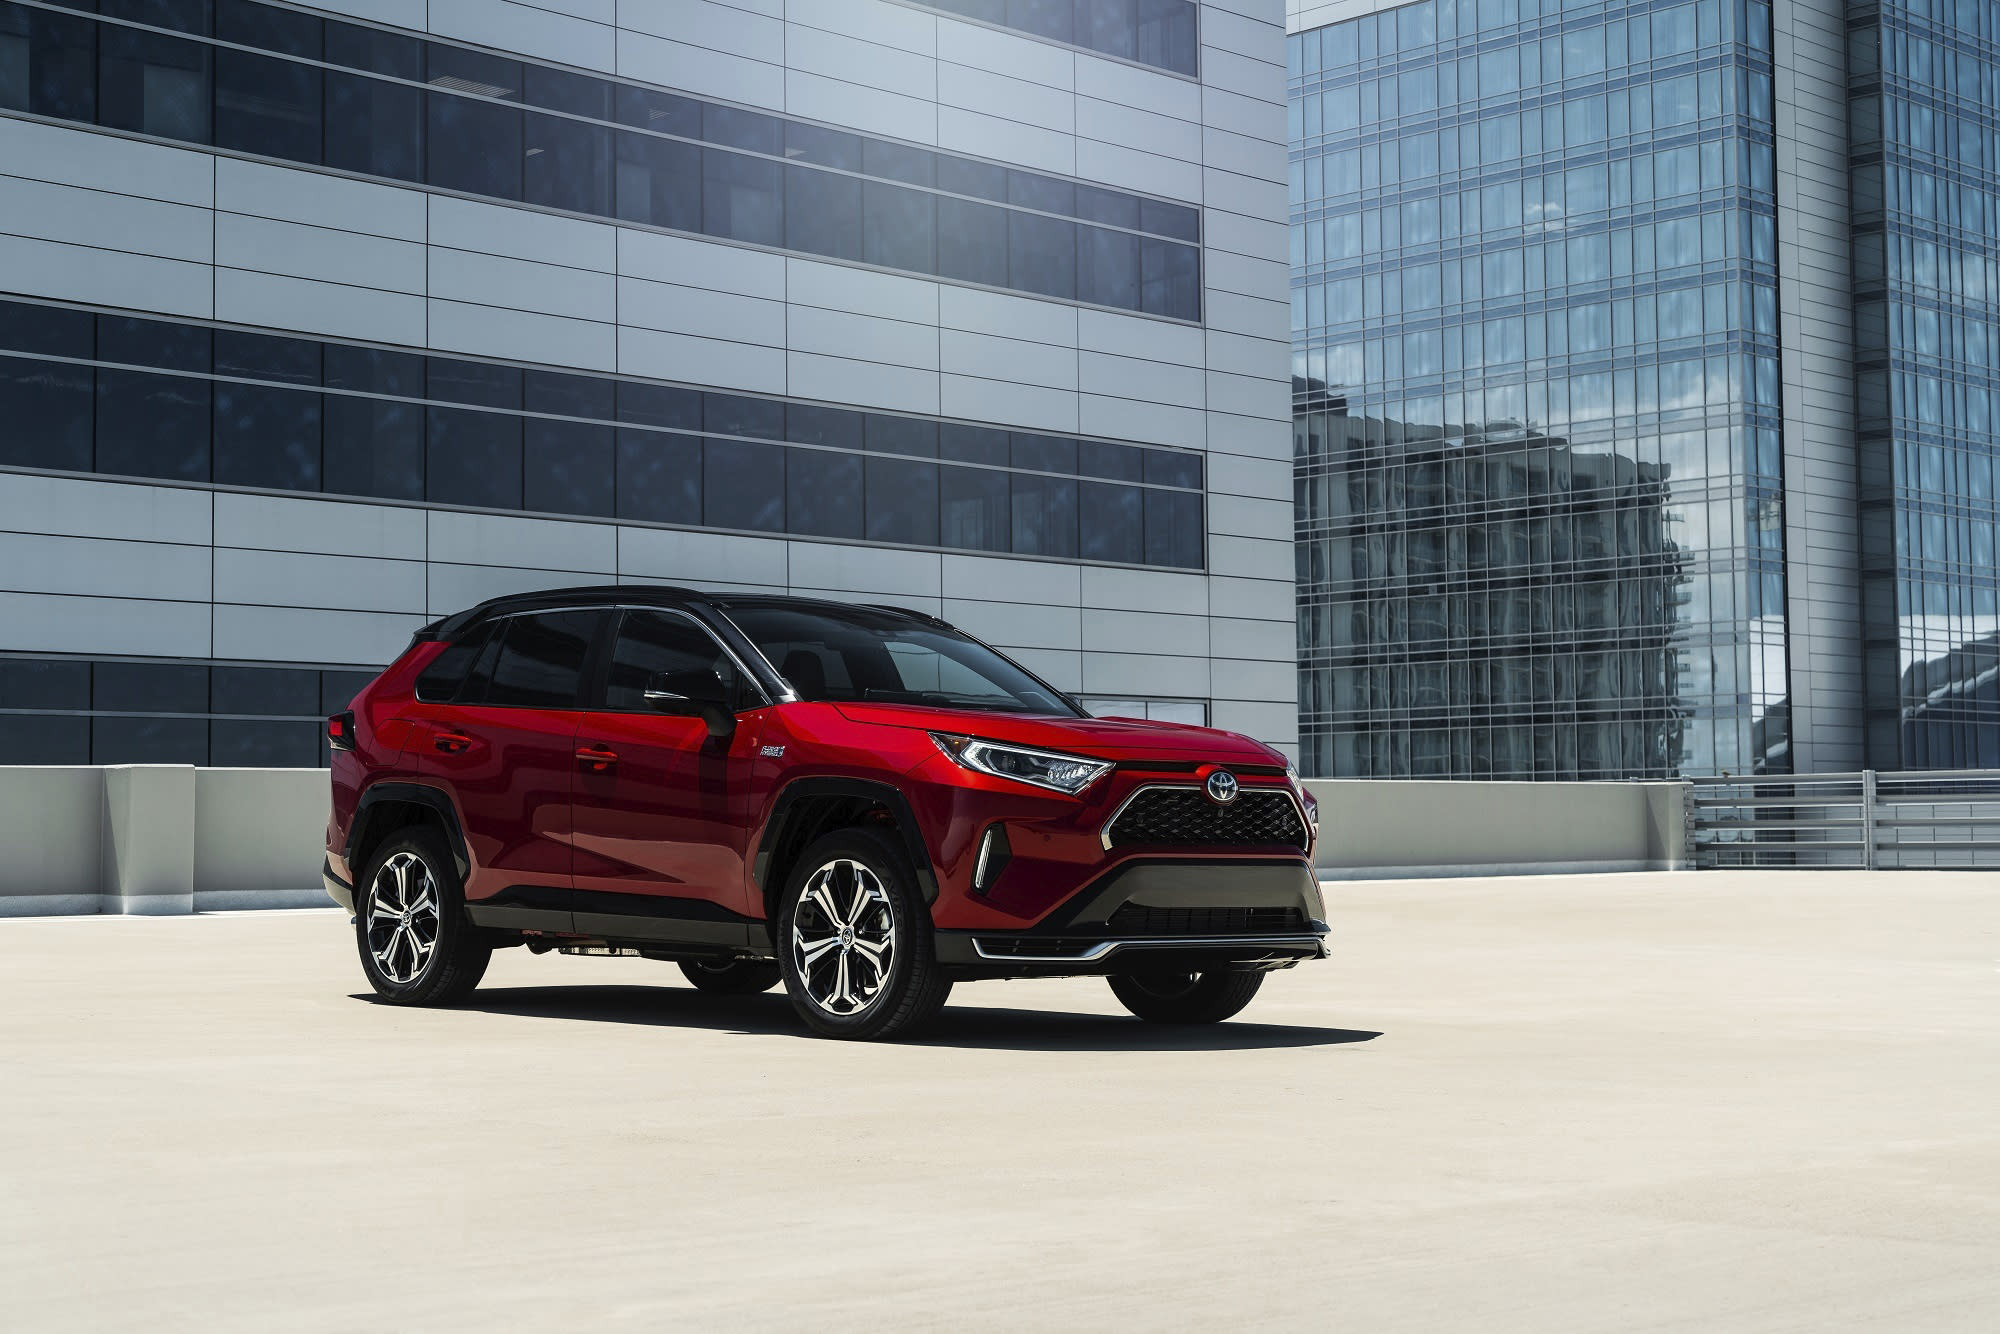 This photo provided by Toyota shows the RAV4 Prime, a plug-in hybrid crossover SUV with all-wheel drive and a battery pack. It offers an estimated 42 miles of electric-only range, among the best in the class. (Courtesy of Toyota Motor Sales U.S.A. via AP)